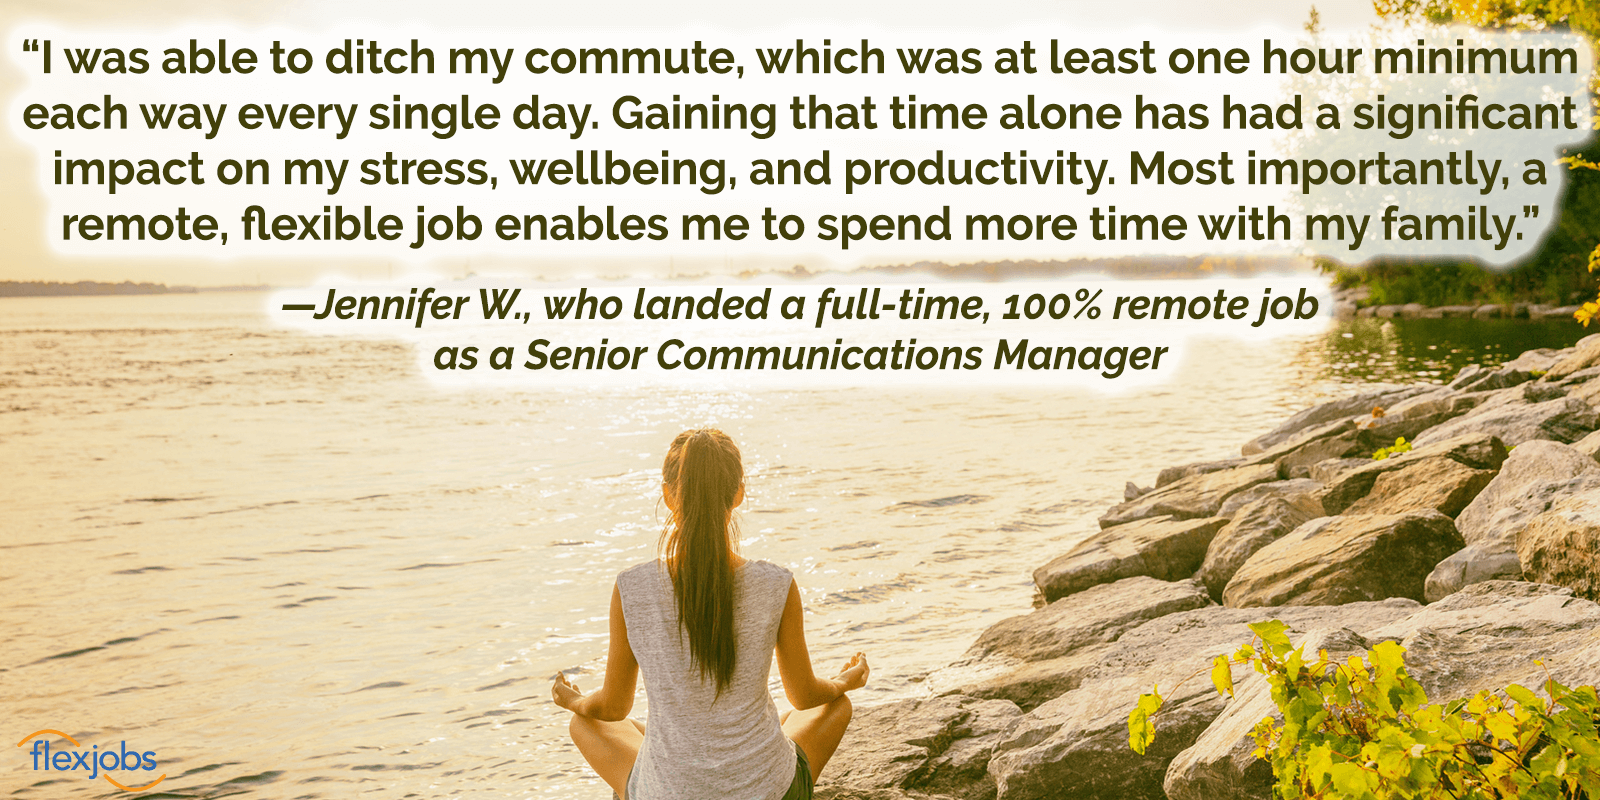 Woman Finds Dream Job as Remote Communications Manager 1